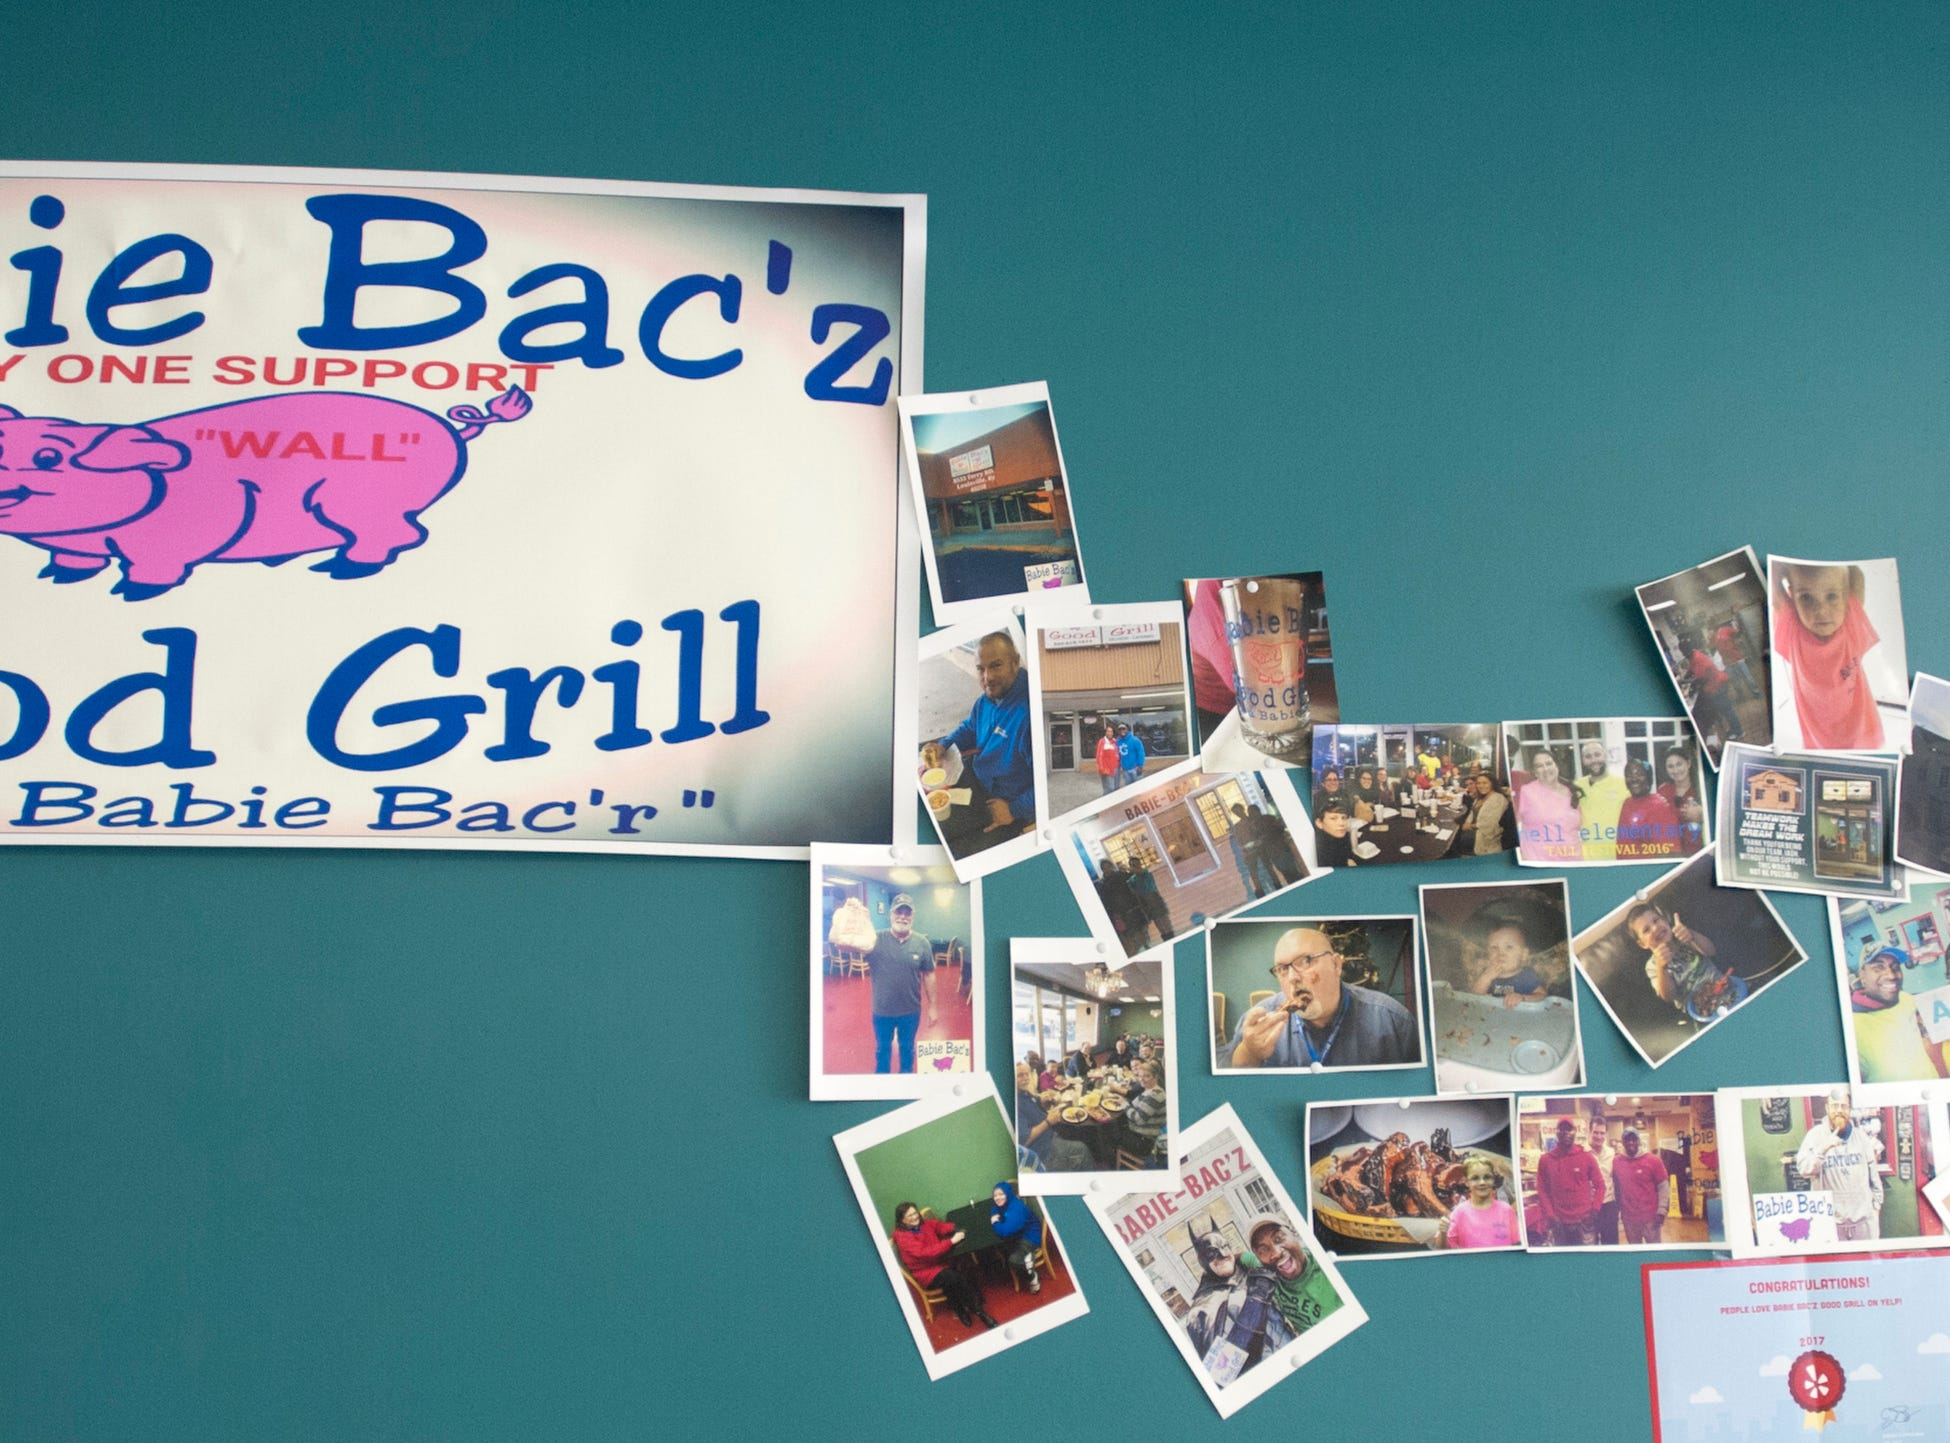 A wall in the Babie Bac'z Good Grill features snapshots of the patrons on the eatery's first day of business, in December of 2017.October 24, 2018